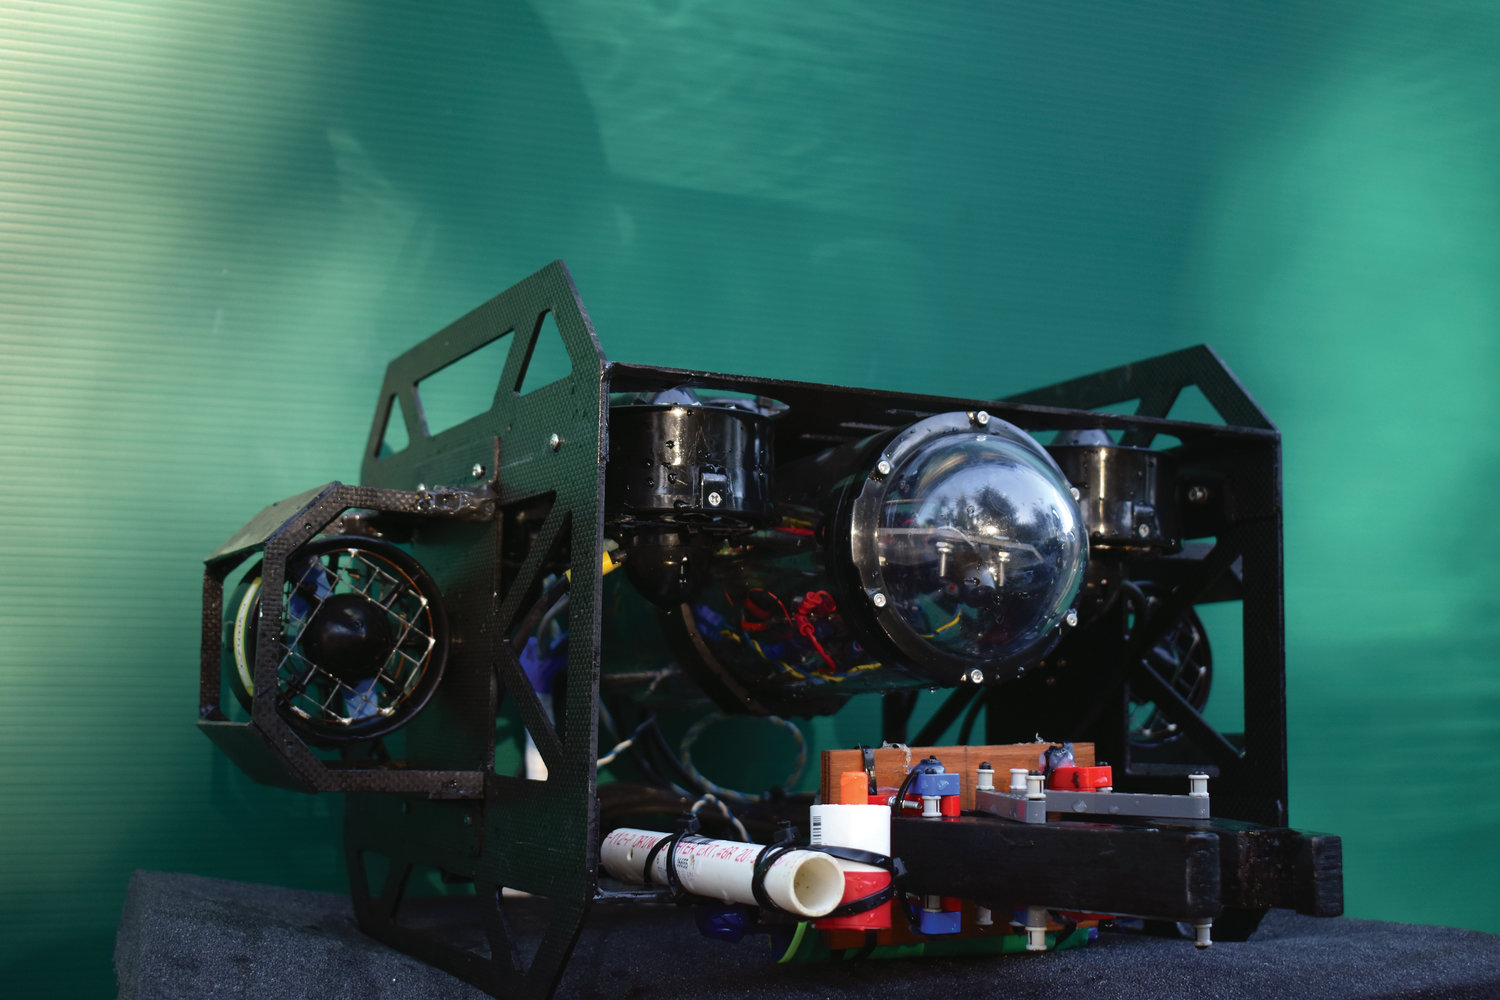 Contest missions include inspecting drainage pipes, releasing simulated fish into the environment, and recovering a civil war-era cannon with the ROV seen here.